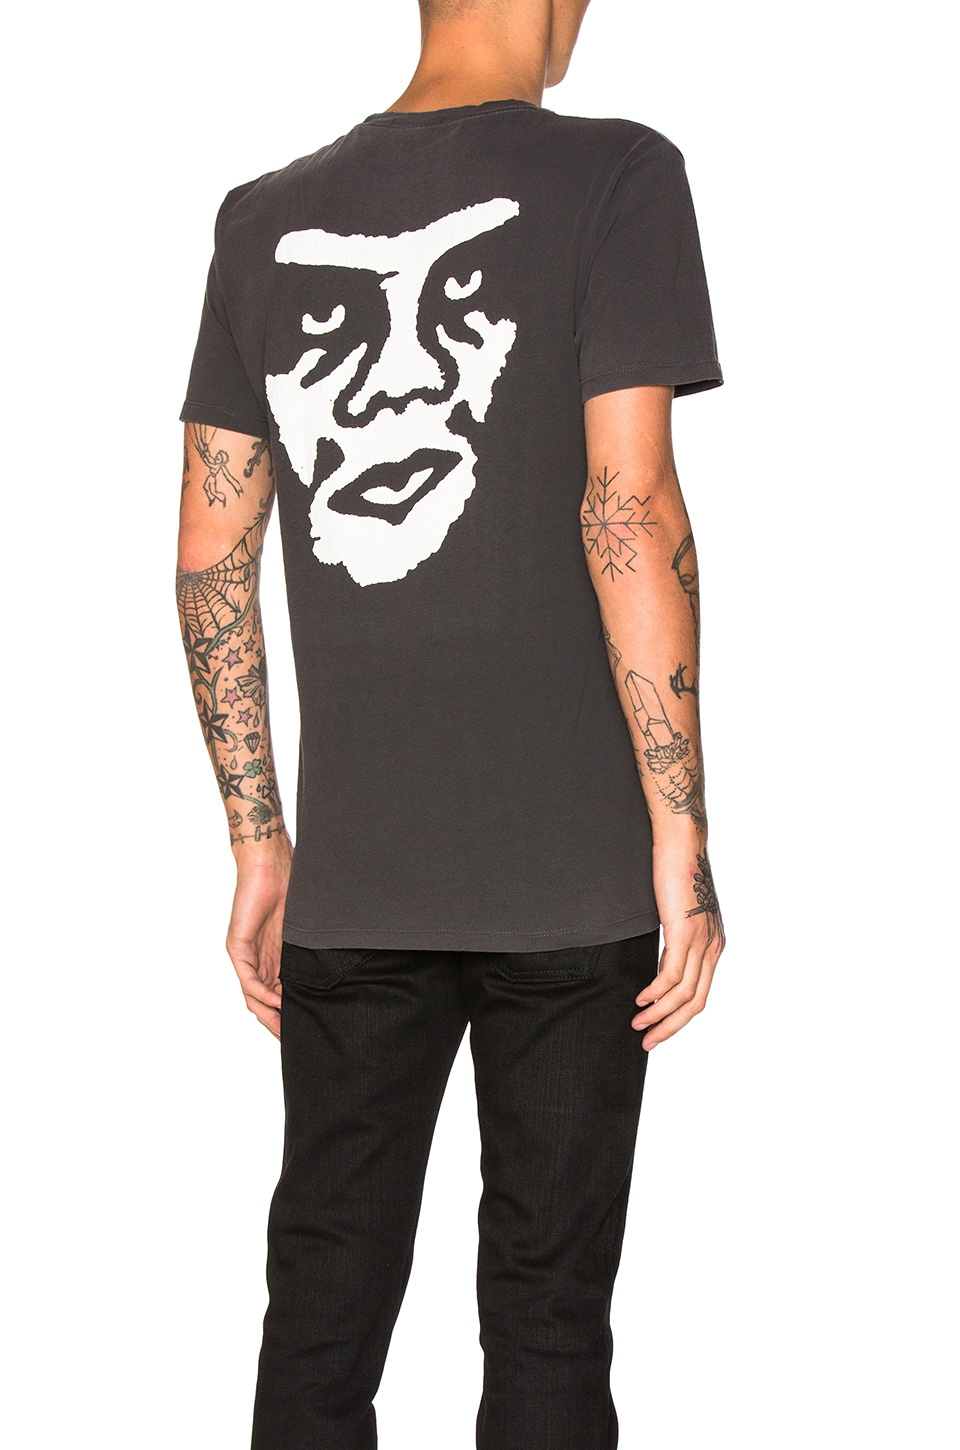 The Creeper Tee by Obey